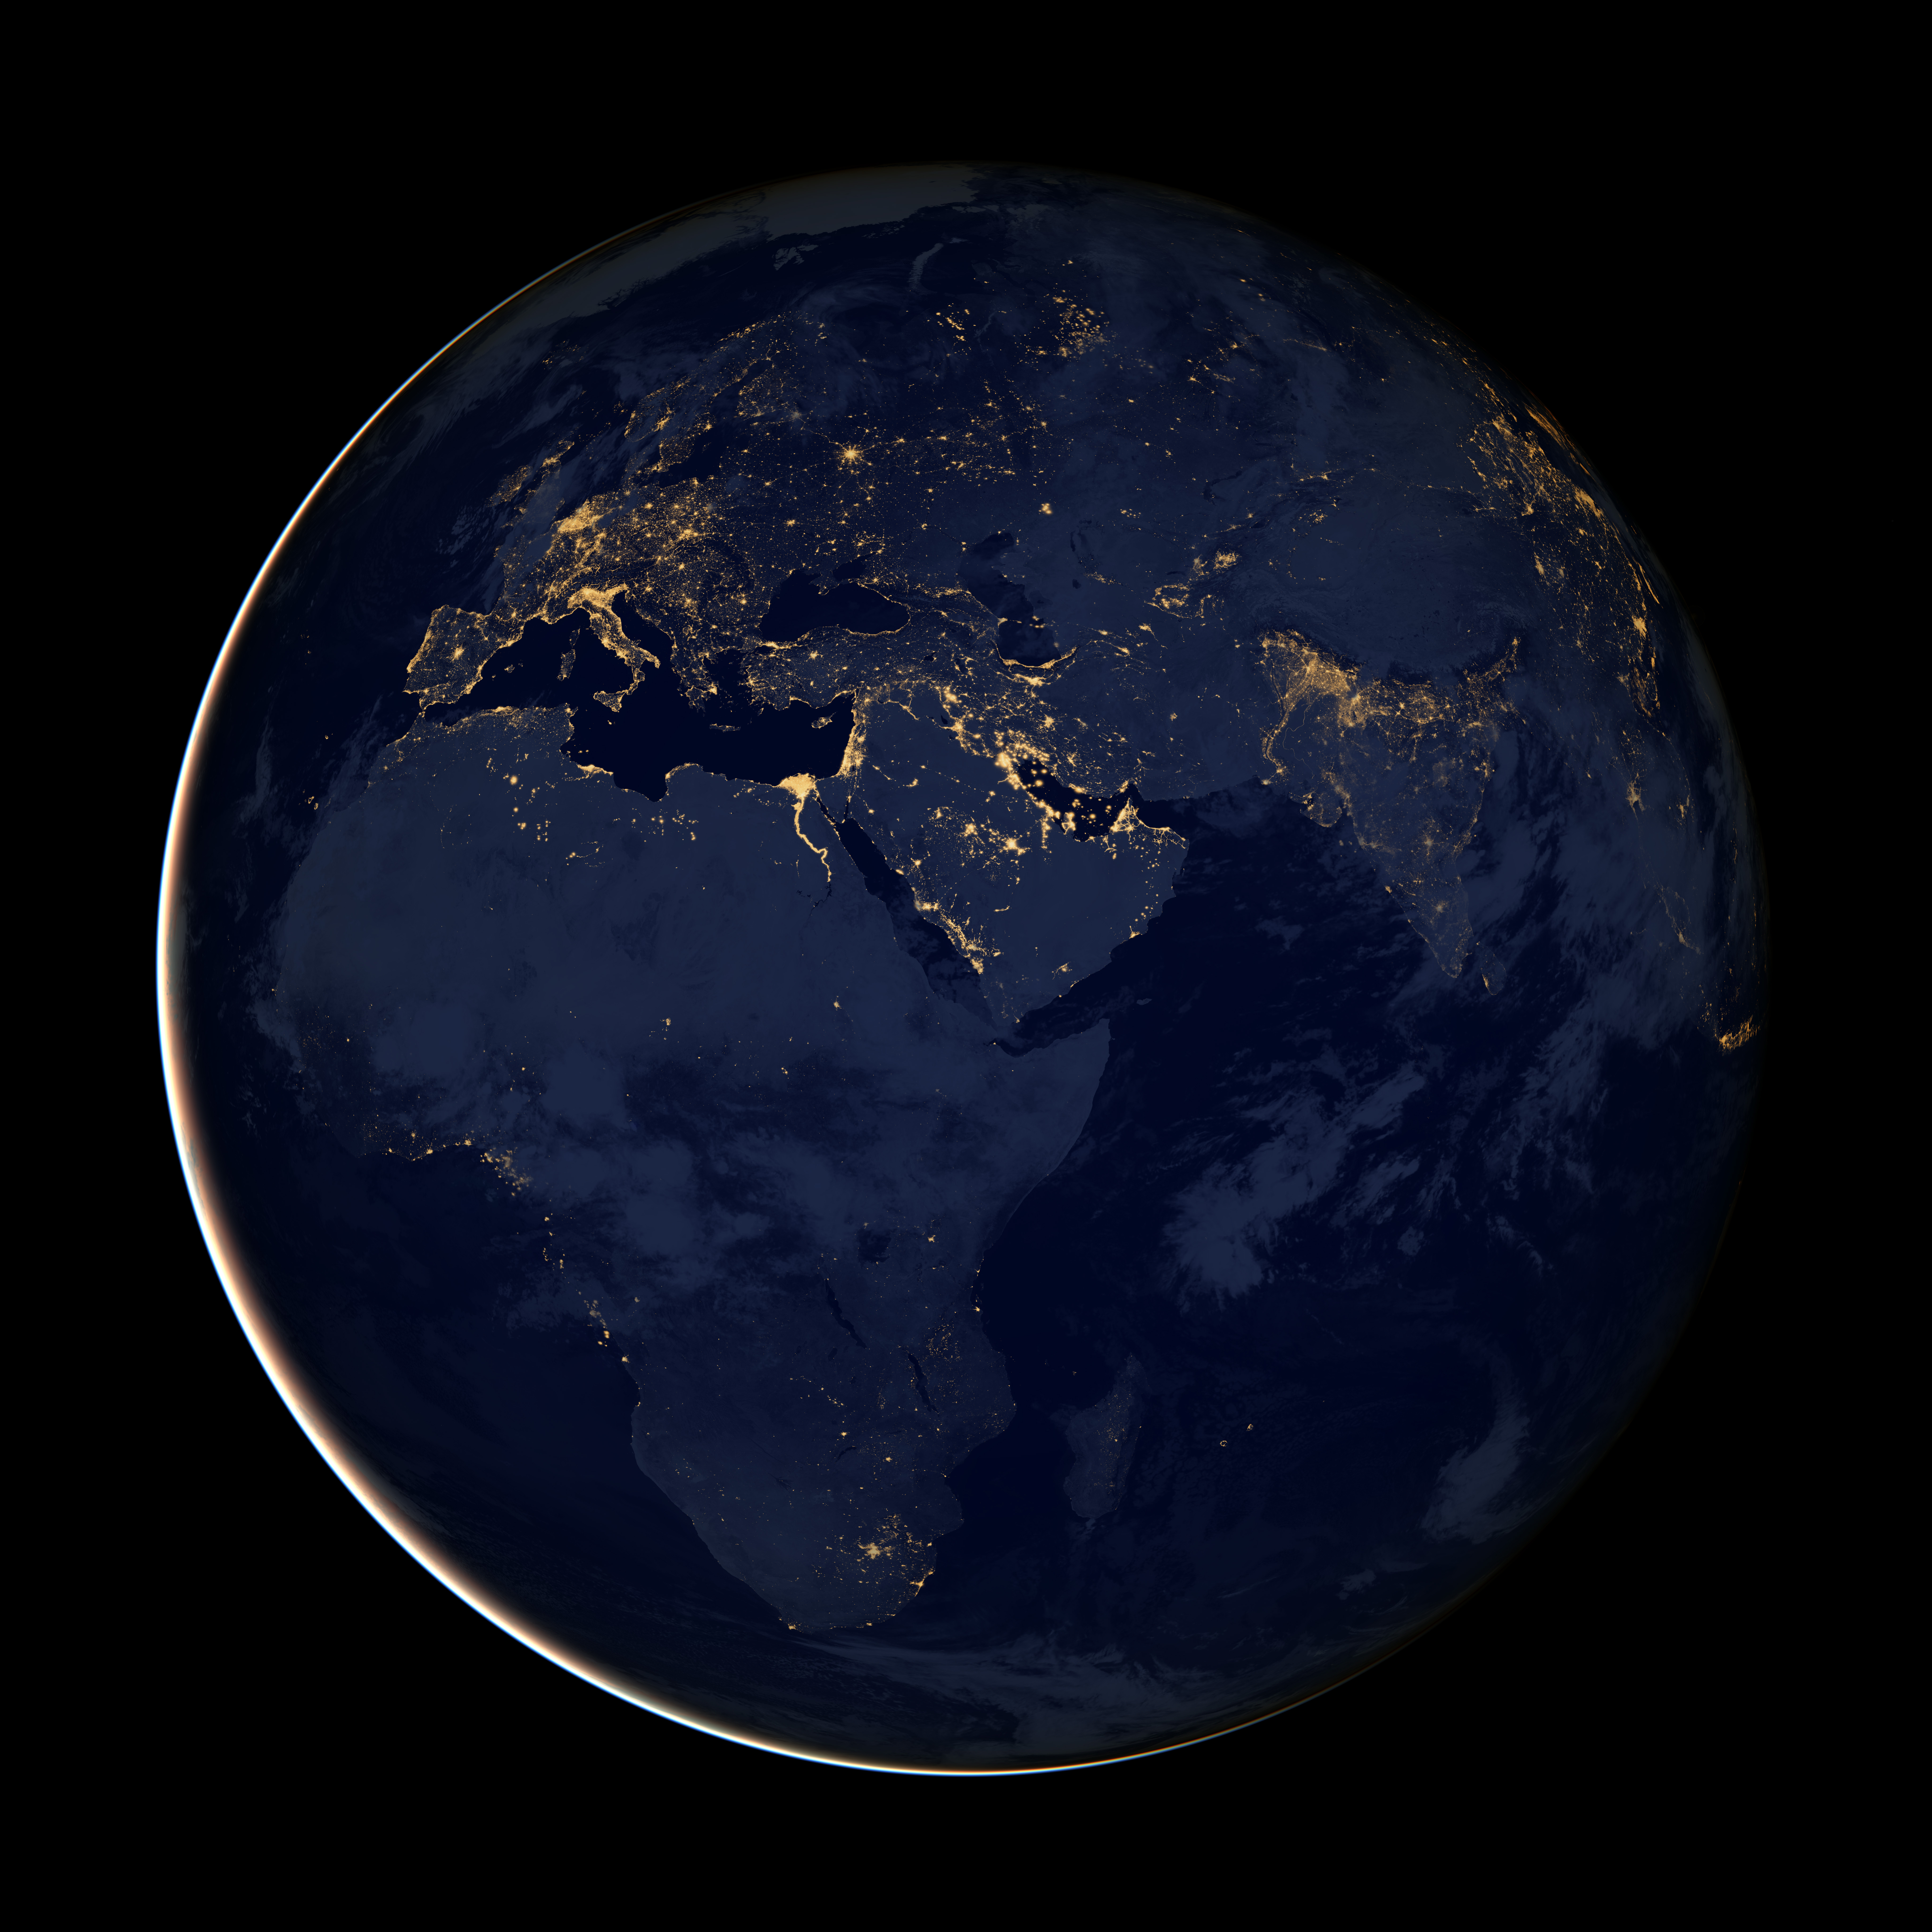 City Lights of Africa, Europe, and the Middle East ...